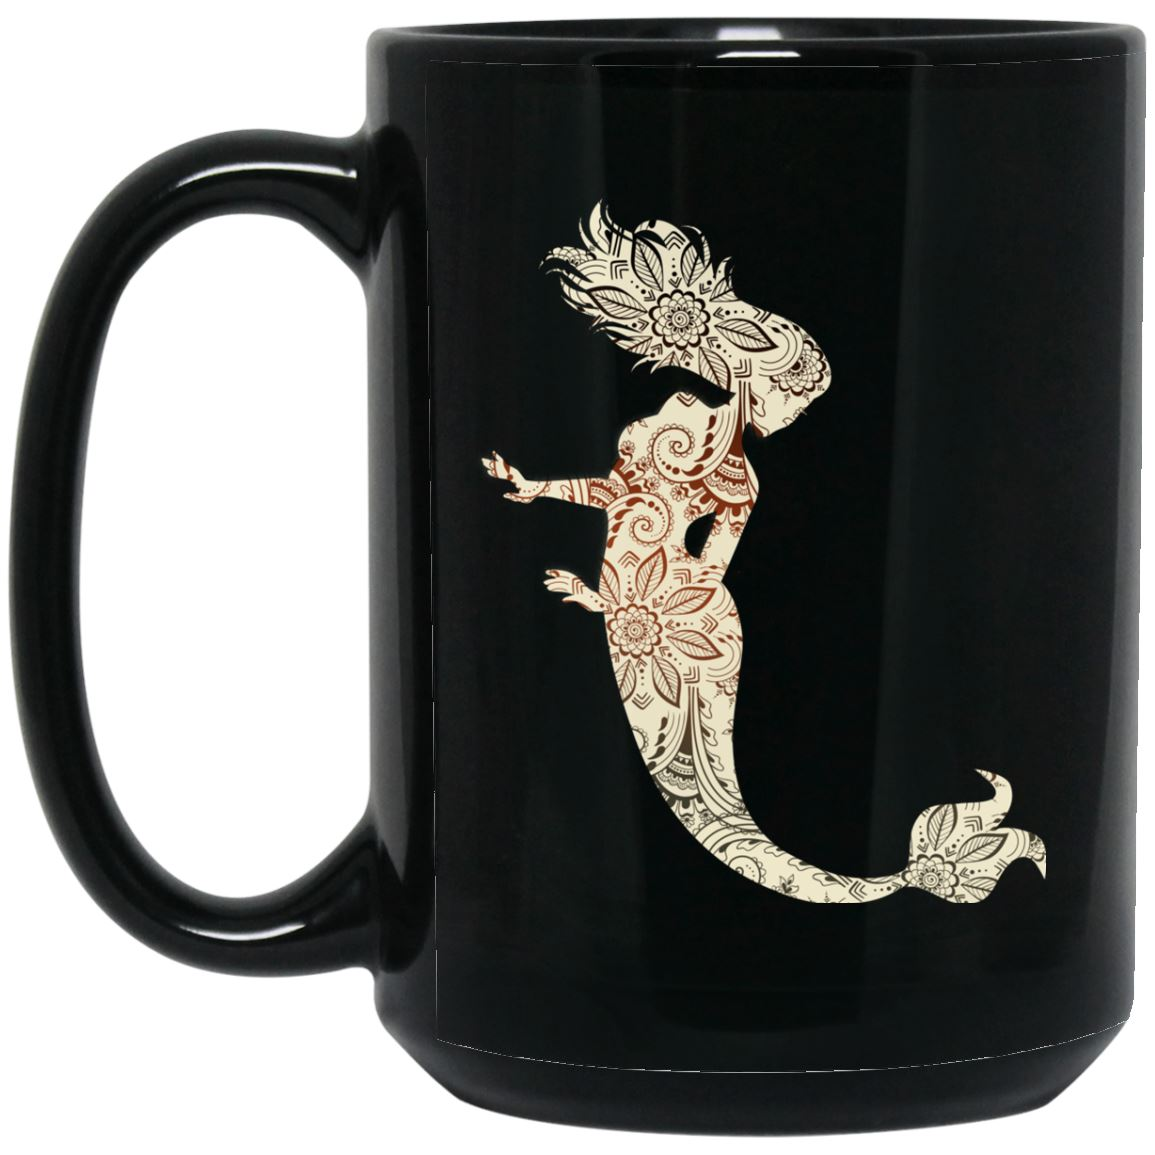 Mermaid Art 15 oz. Black Mug Drinkware Black One Size